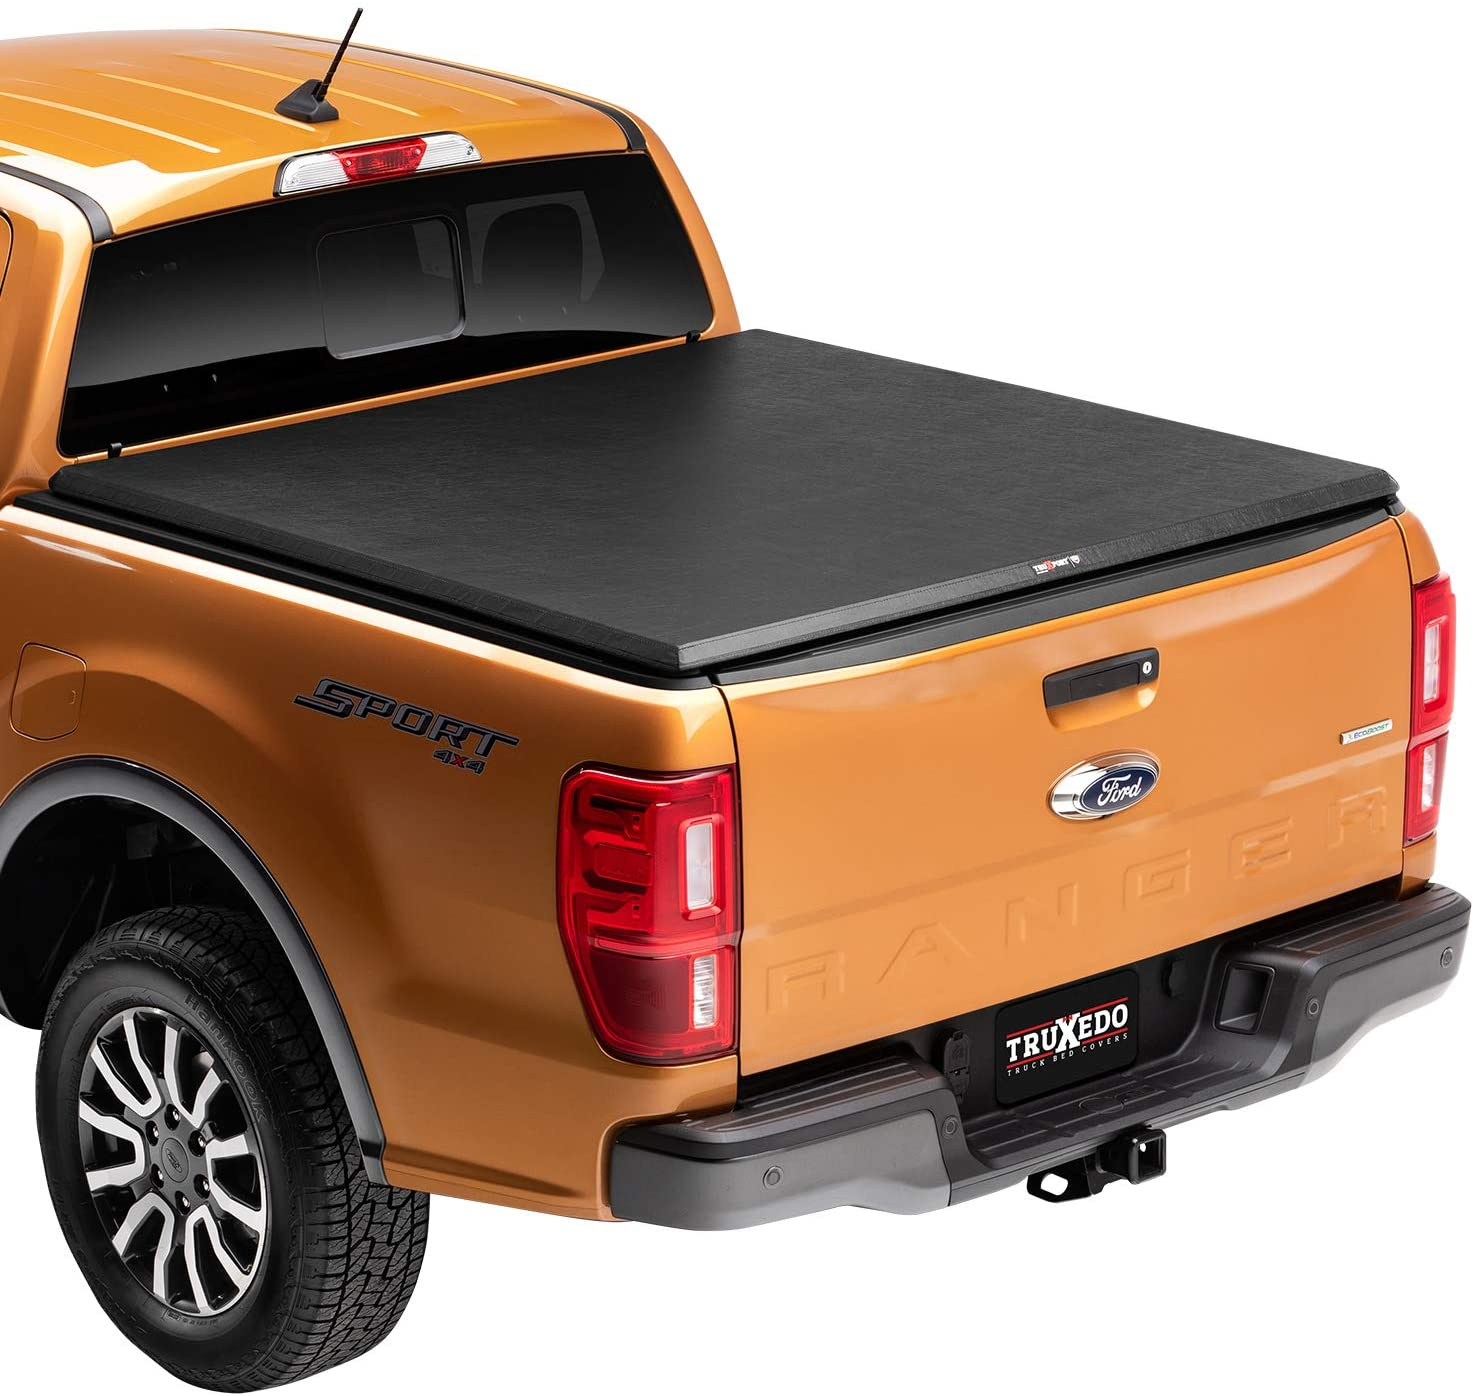 Truxedo Truxport Soft Roll Up Truck Bed Tonneau Cover 256801 Fits 05 15 Toyota Tacoma 6 Bed Automotive Amazon Com